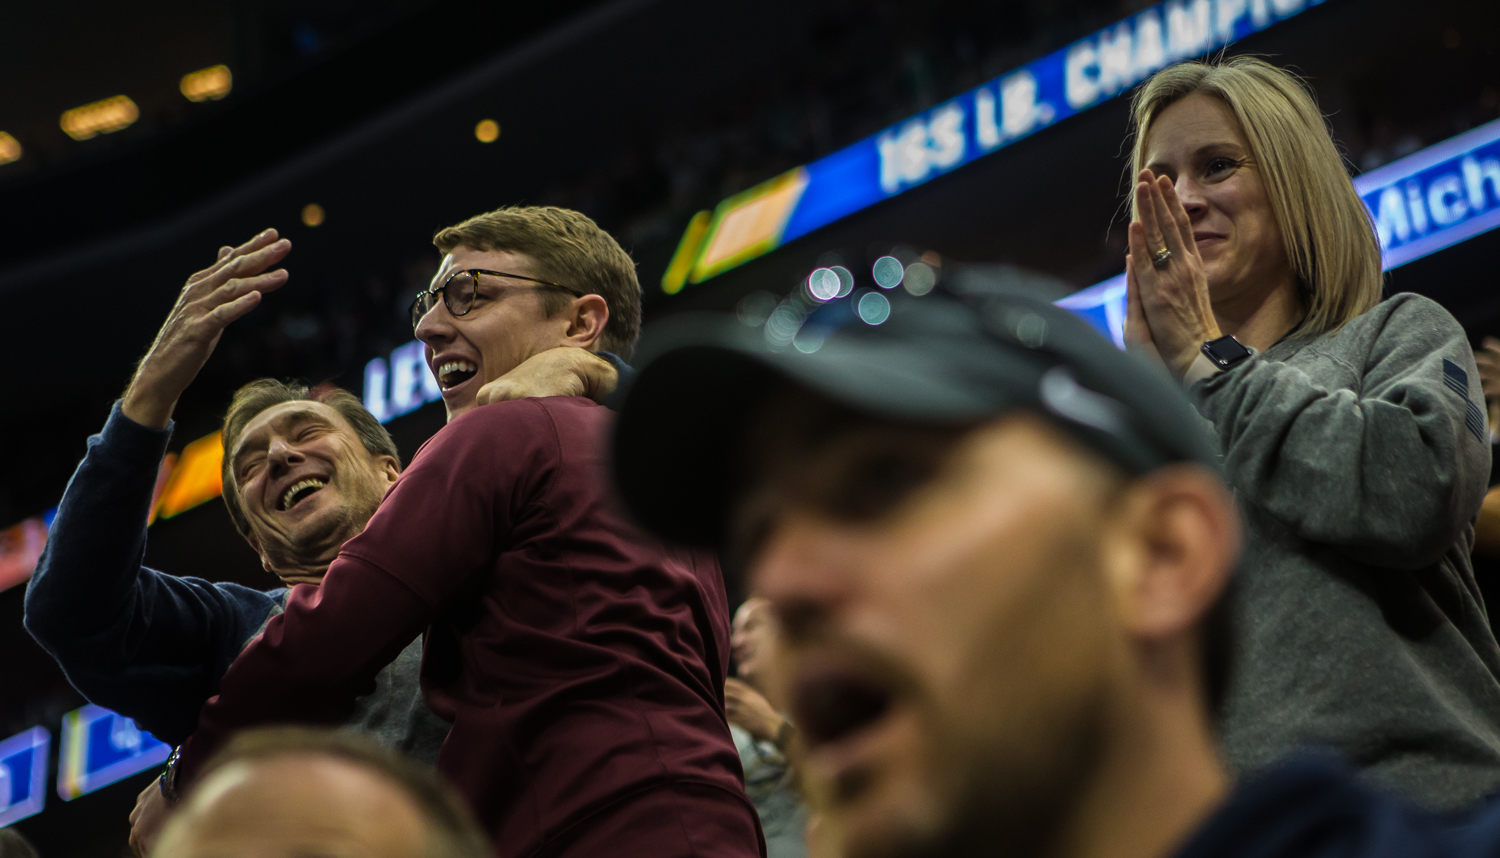 Virginia+Tech+fans+cheer+on+165-pound+Mekhi+Lewis+during+the+final+session+of+the+2019+NCAA+D1+Wrestling+Championships+at+PPG+Paints+Arena+in+Pittsburgh%2C+PA+on+Saturday%2C+March+23%2C+2019.